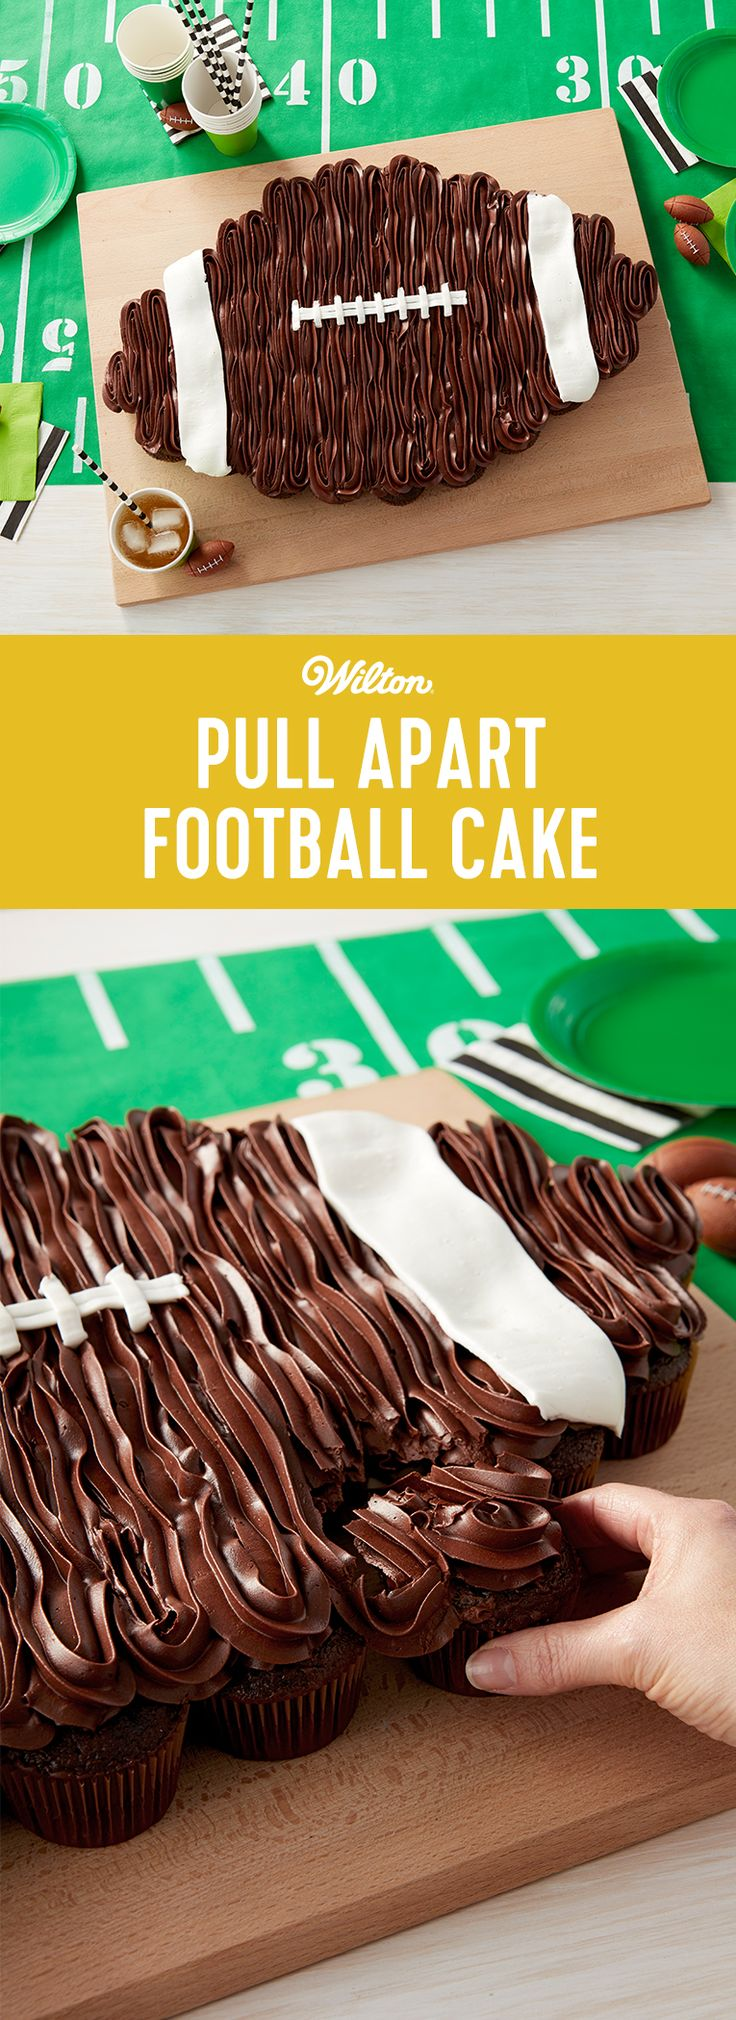 Pull apart football cake for Super Bowl Sunday!